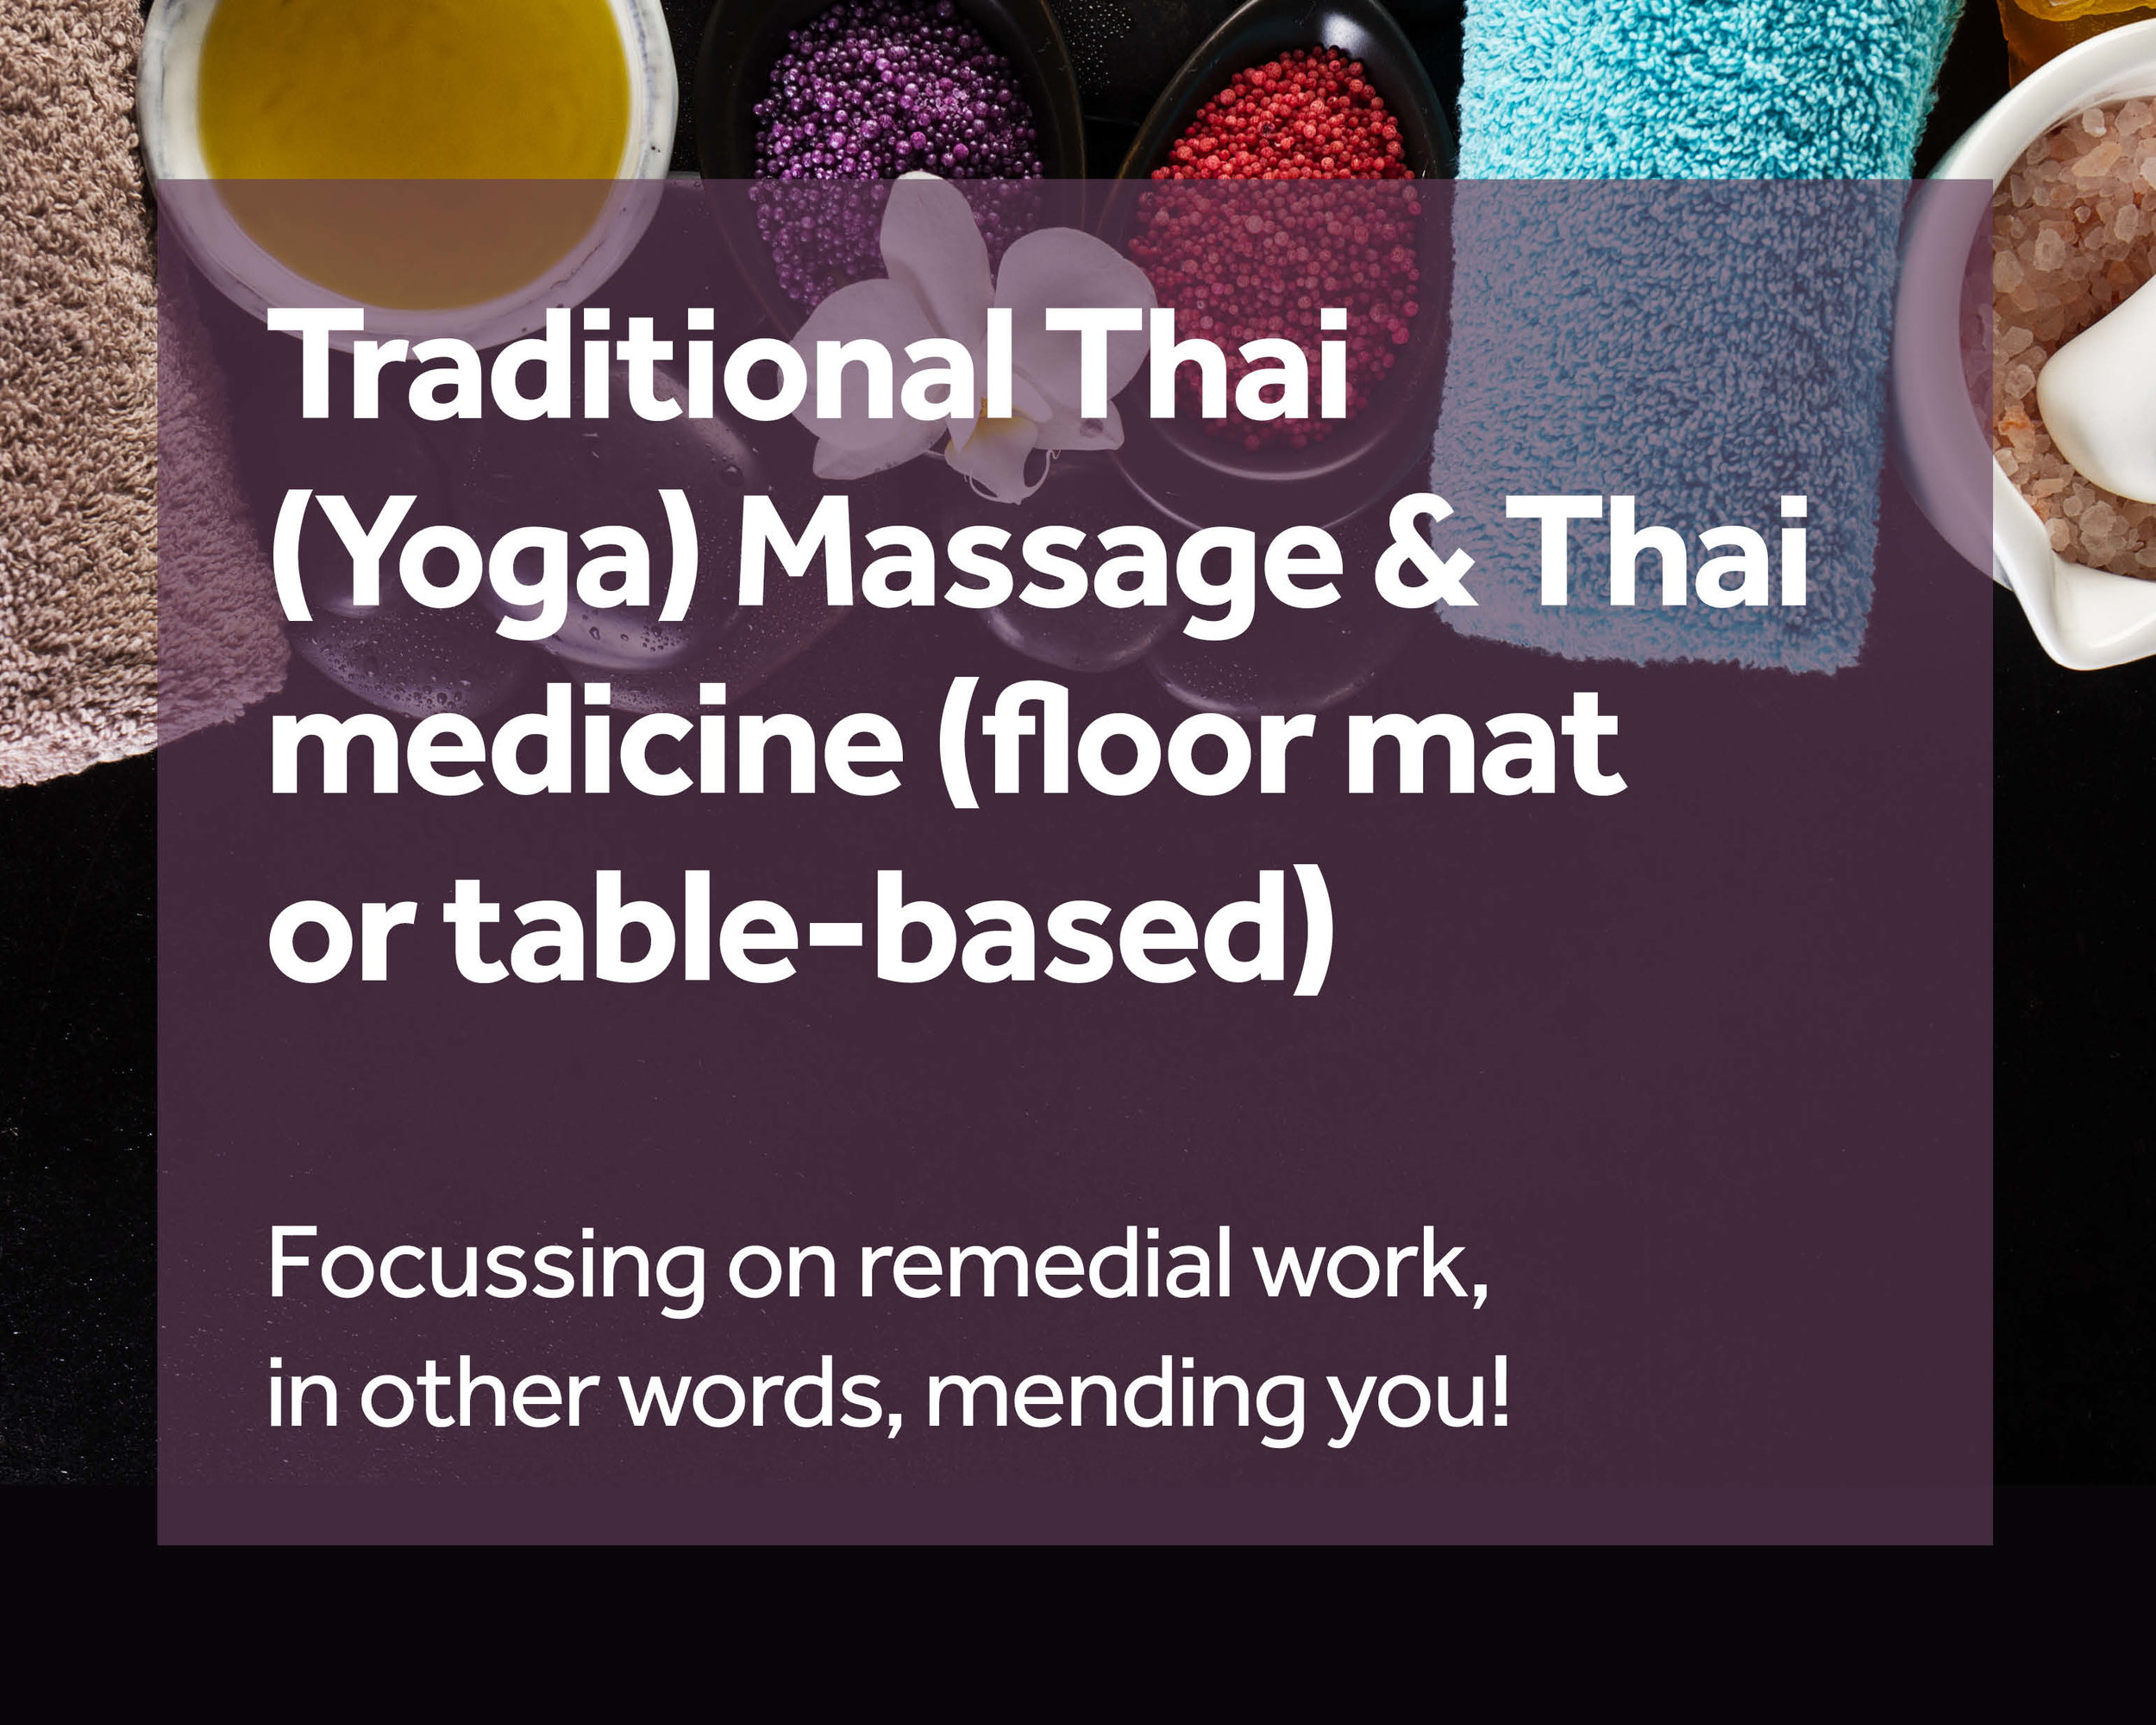 Thai (Yoga) Massage & Medicine - Combining gently-applied stretches, soft (or deep if requested) muscle softening and acupressure techniques. Tight/tense tissue; Headaches; Cramps; Nerve-like pains. Discounts for first appointments and batch-booking. Treatment vouchers offered.Paul Davis (MFHT) Spiritual Thai - Traditional floor-based Thai Massage and associated Therapeutics 07501 978 509 @SpiritualThai mobile-remedial-holistic-services@protonmail.com